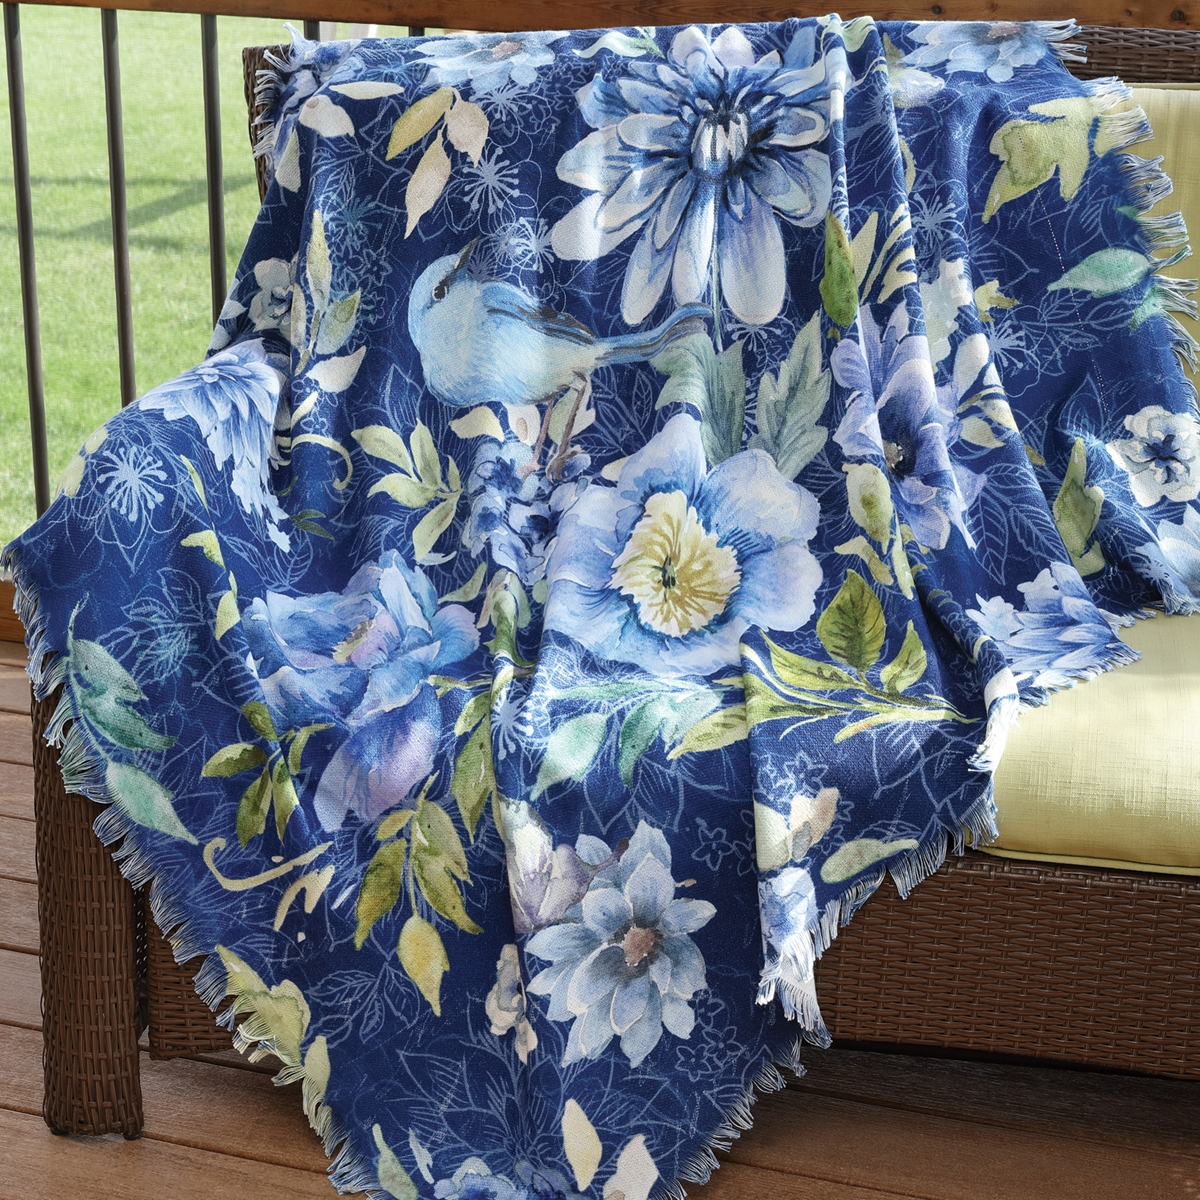 Bluebird Floral Throw